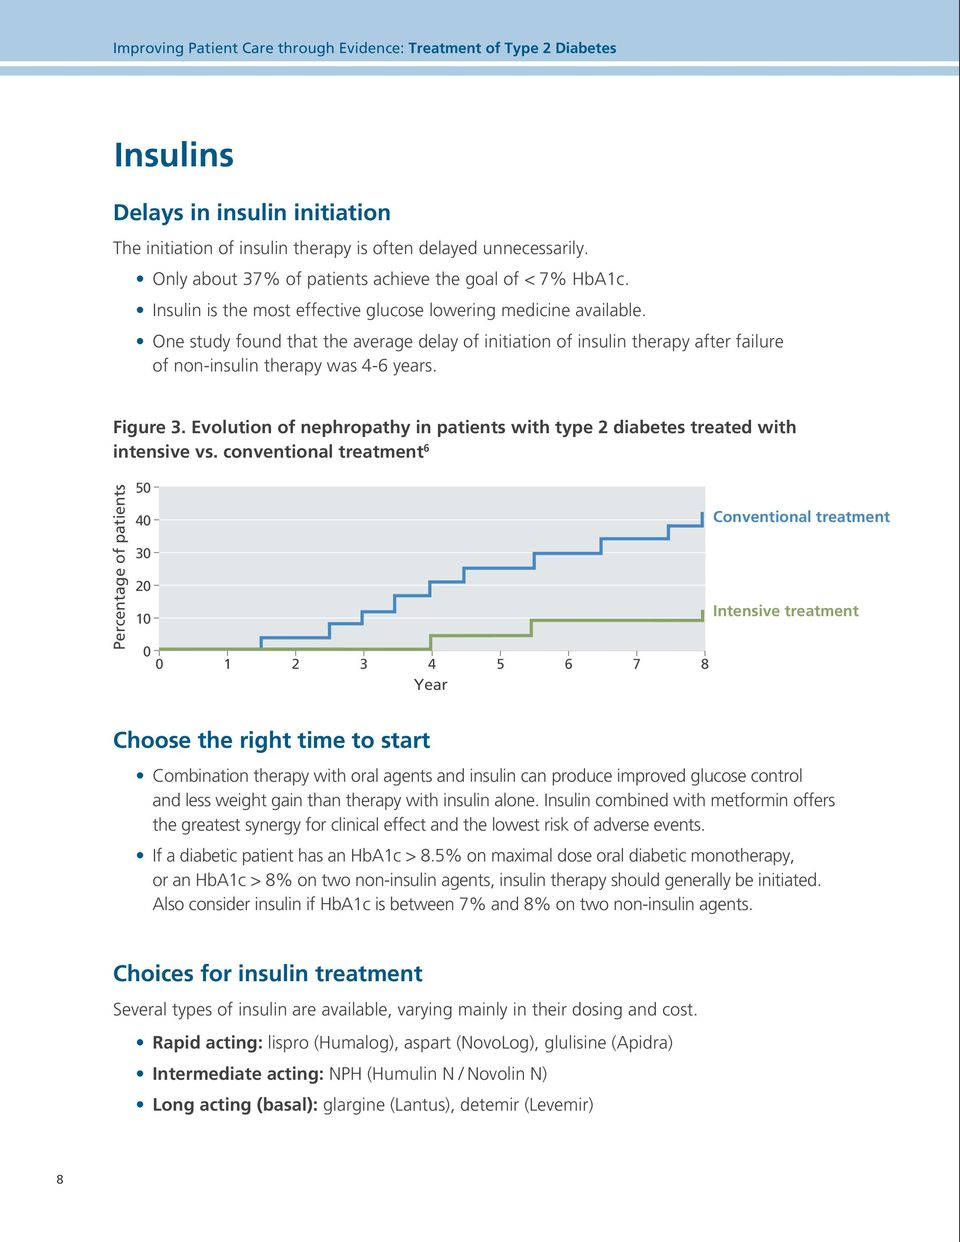 One study found that the average delay of initiation of insulin therapy after failure of non-insulin therapy was 4-6 years. Figure 3.